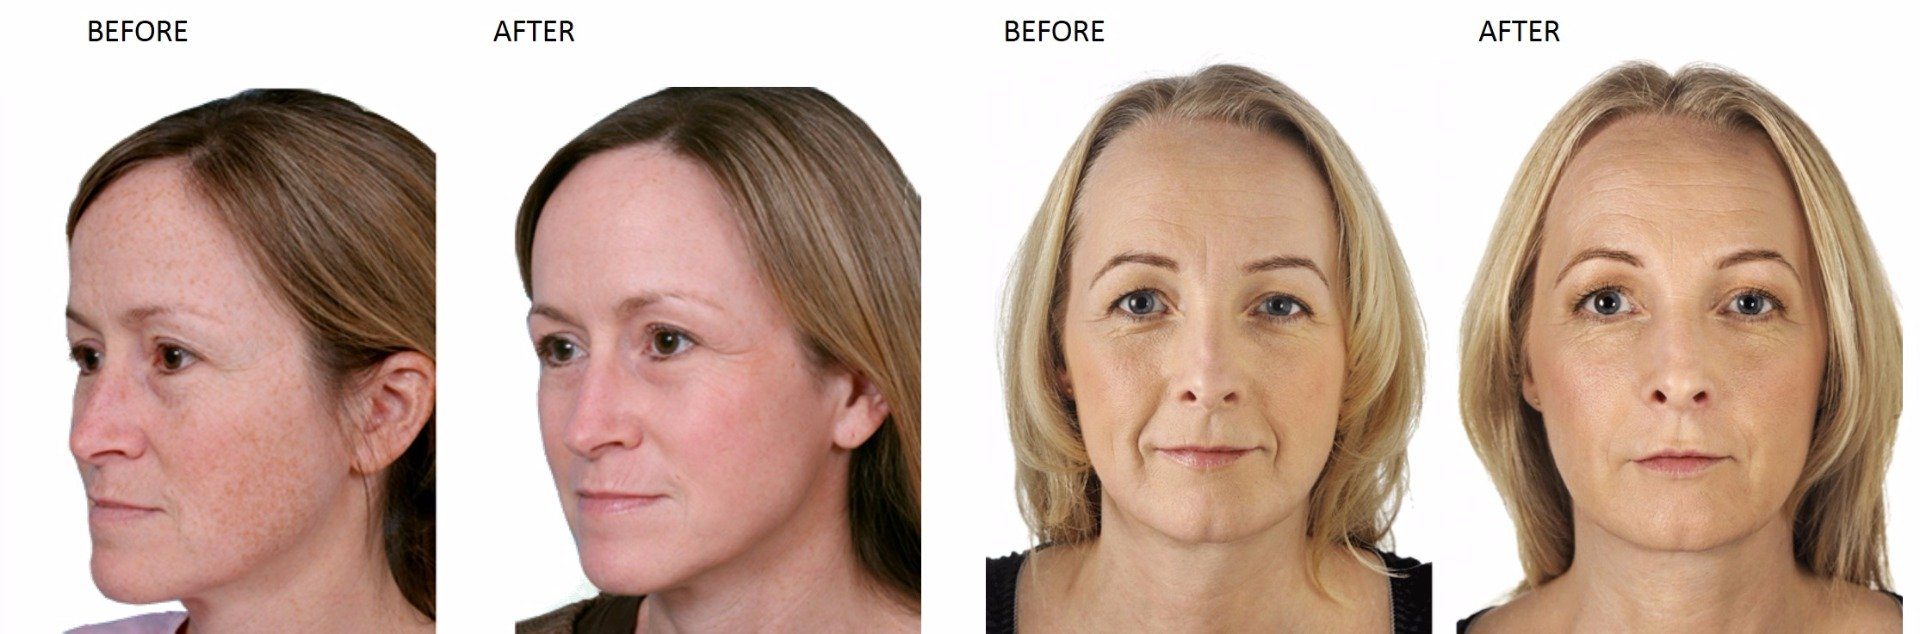 Laser Skin Rejuvenation at Total Body Care